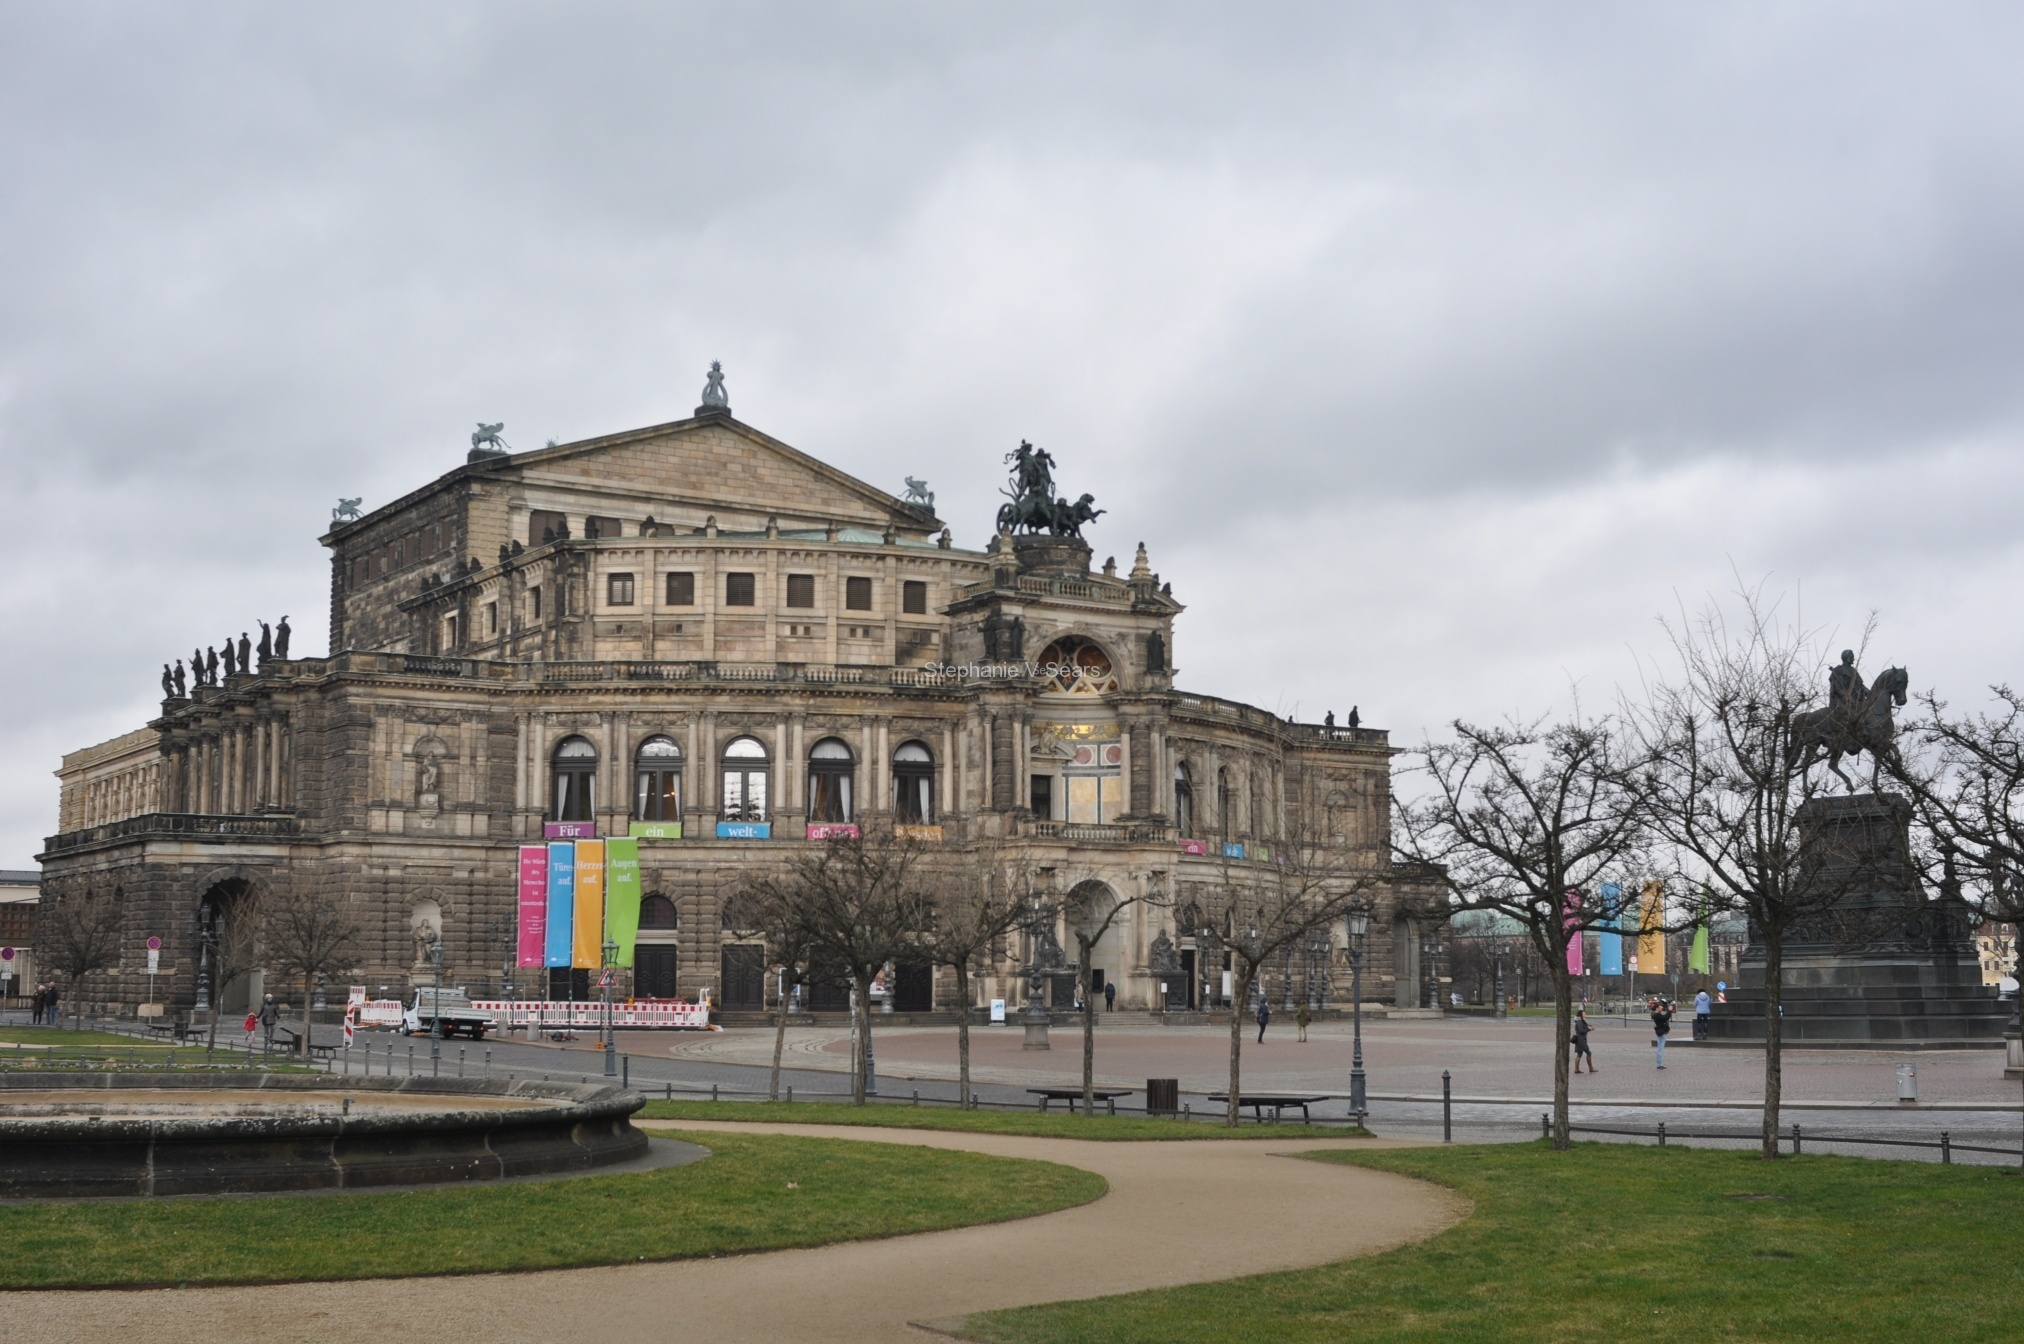 Dresden opera house rebuilt several times after disasters